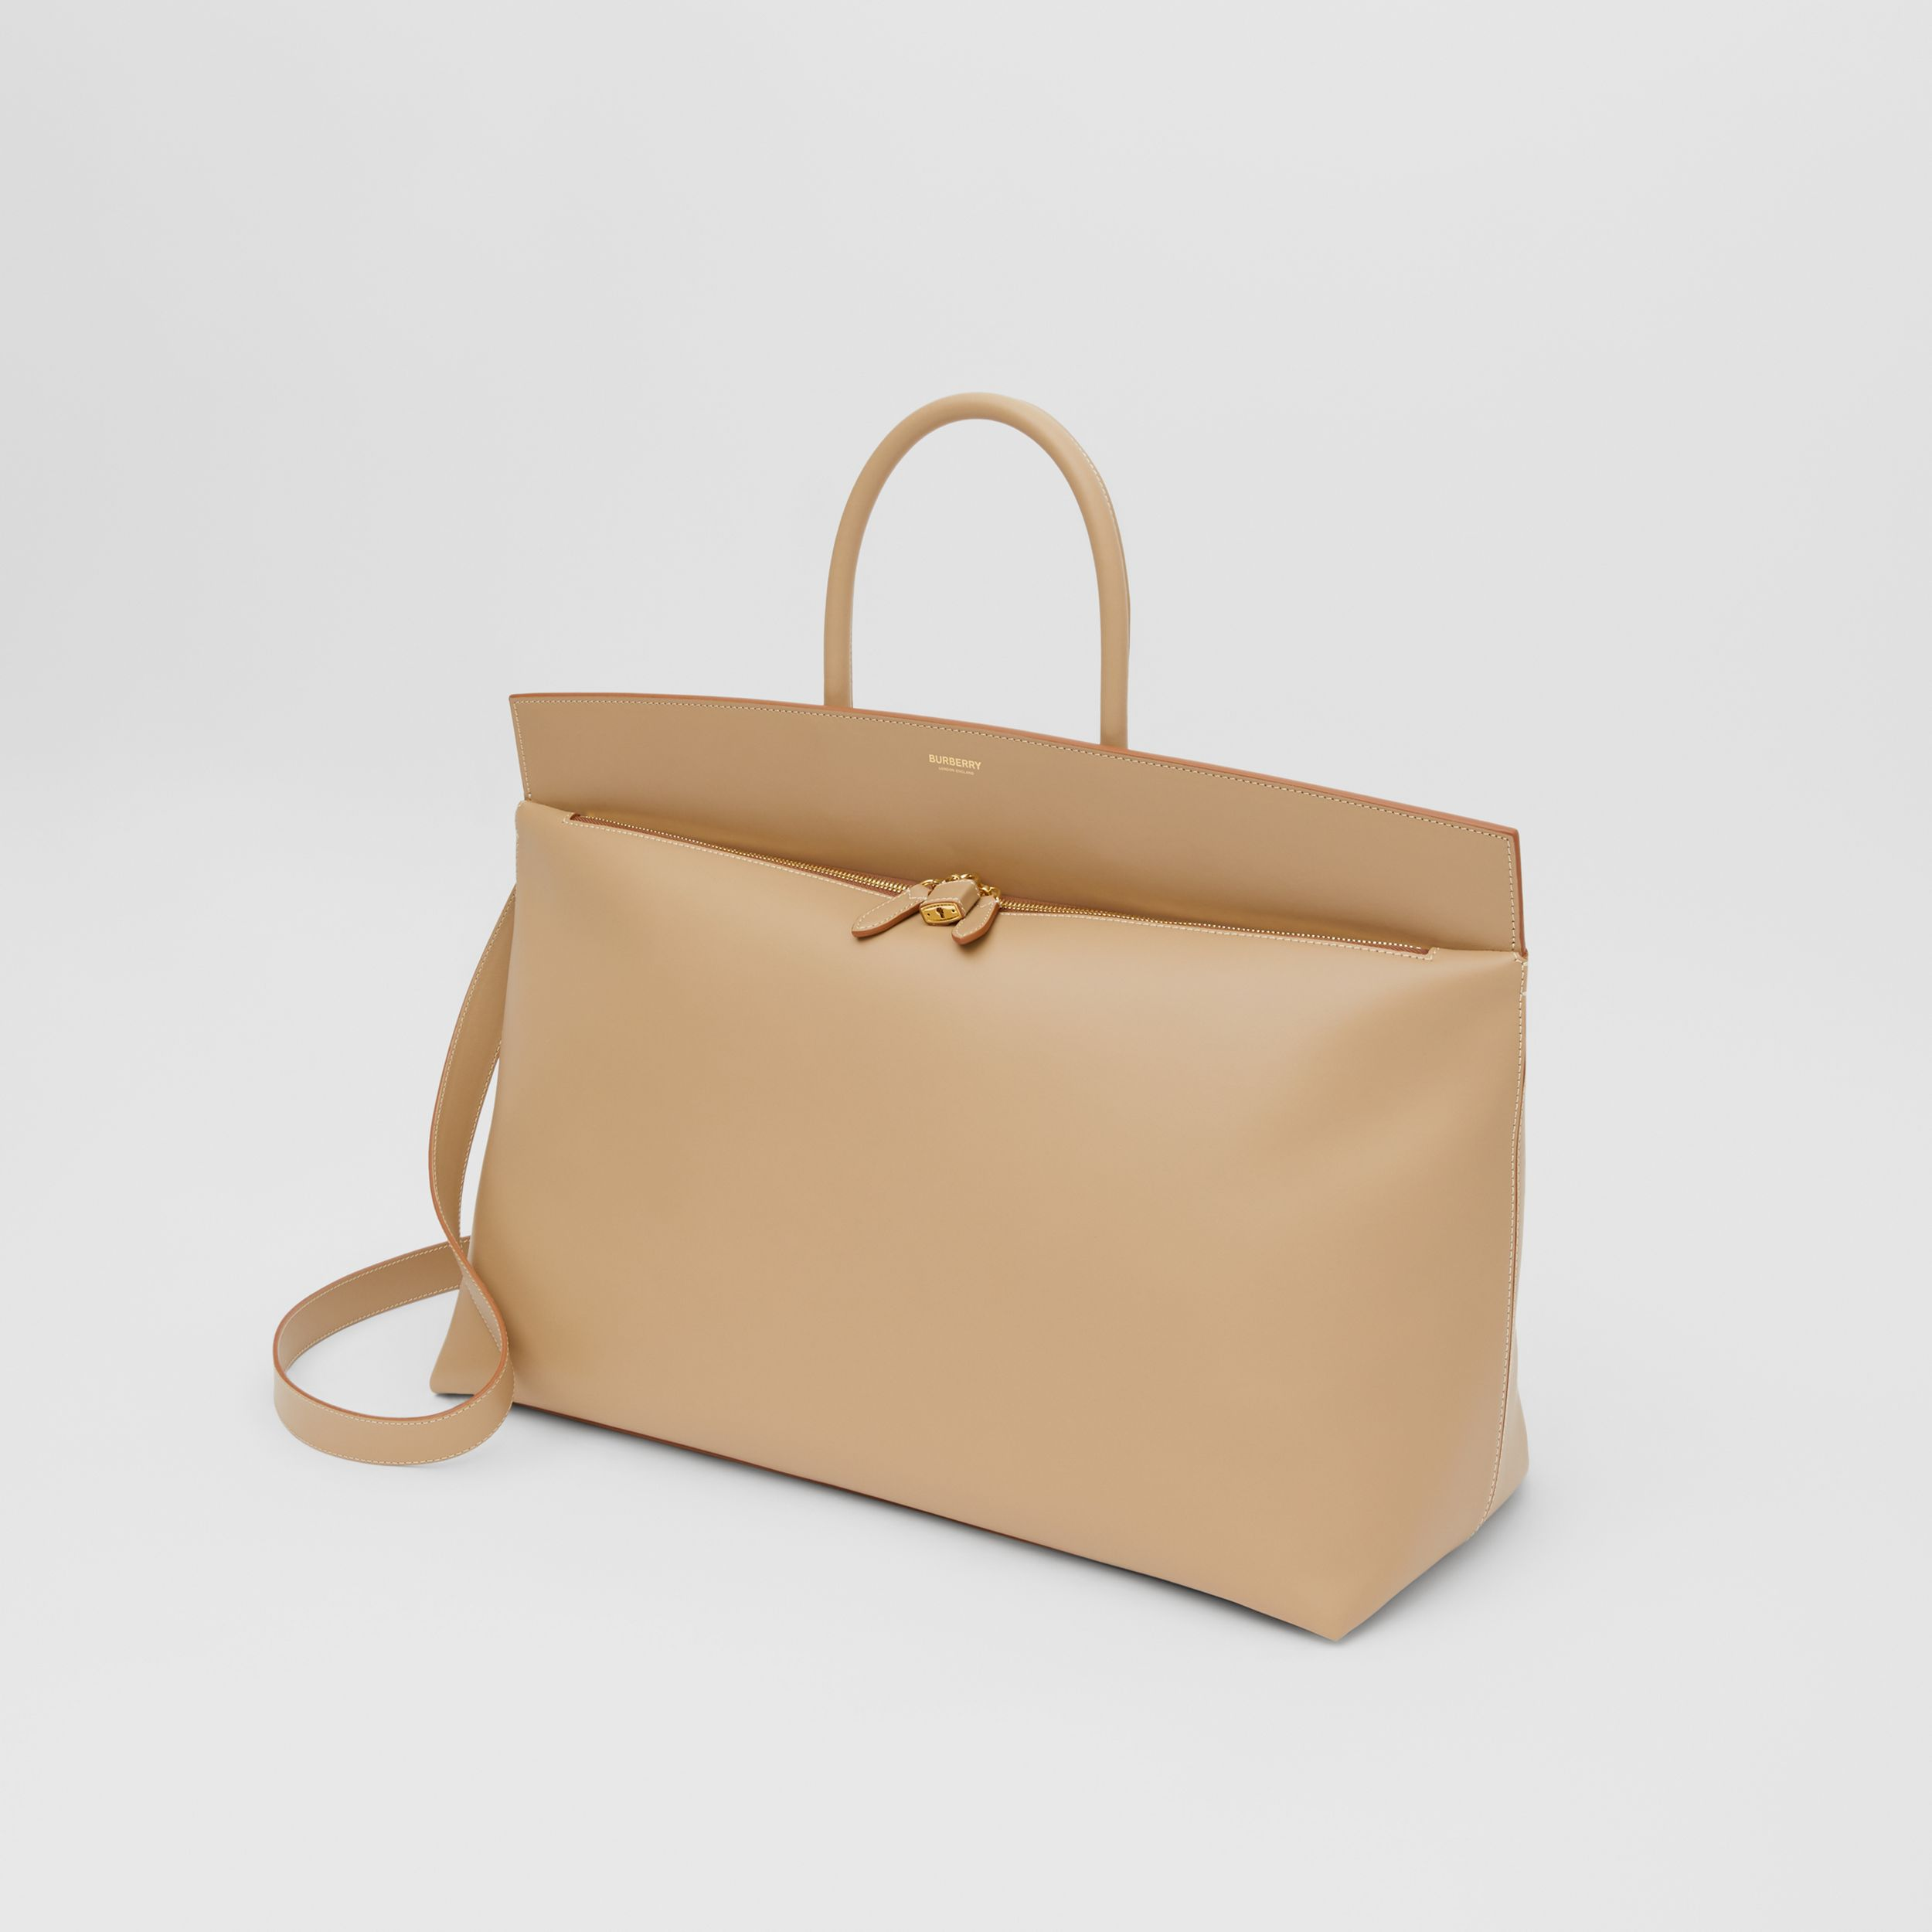 Extra Large Leather Society Top Handle Bag in Honey | Burberry - 4